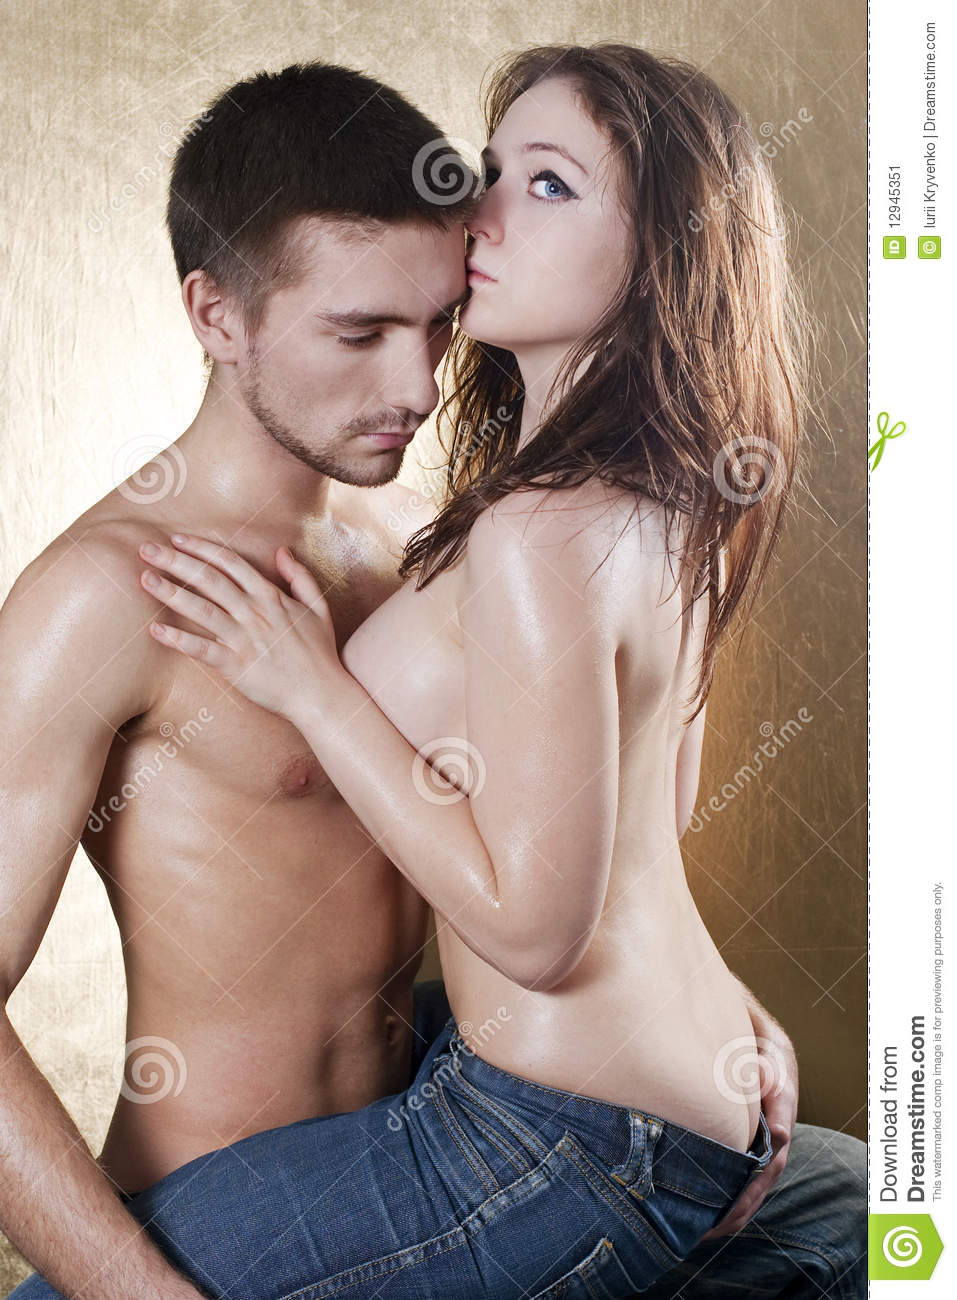 man and women naked sexy photo